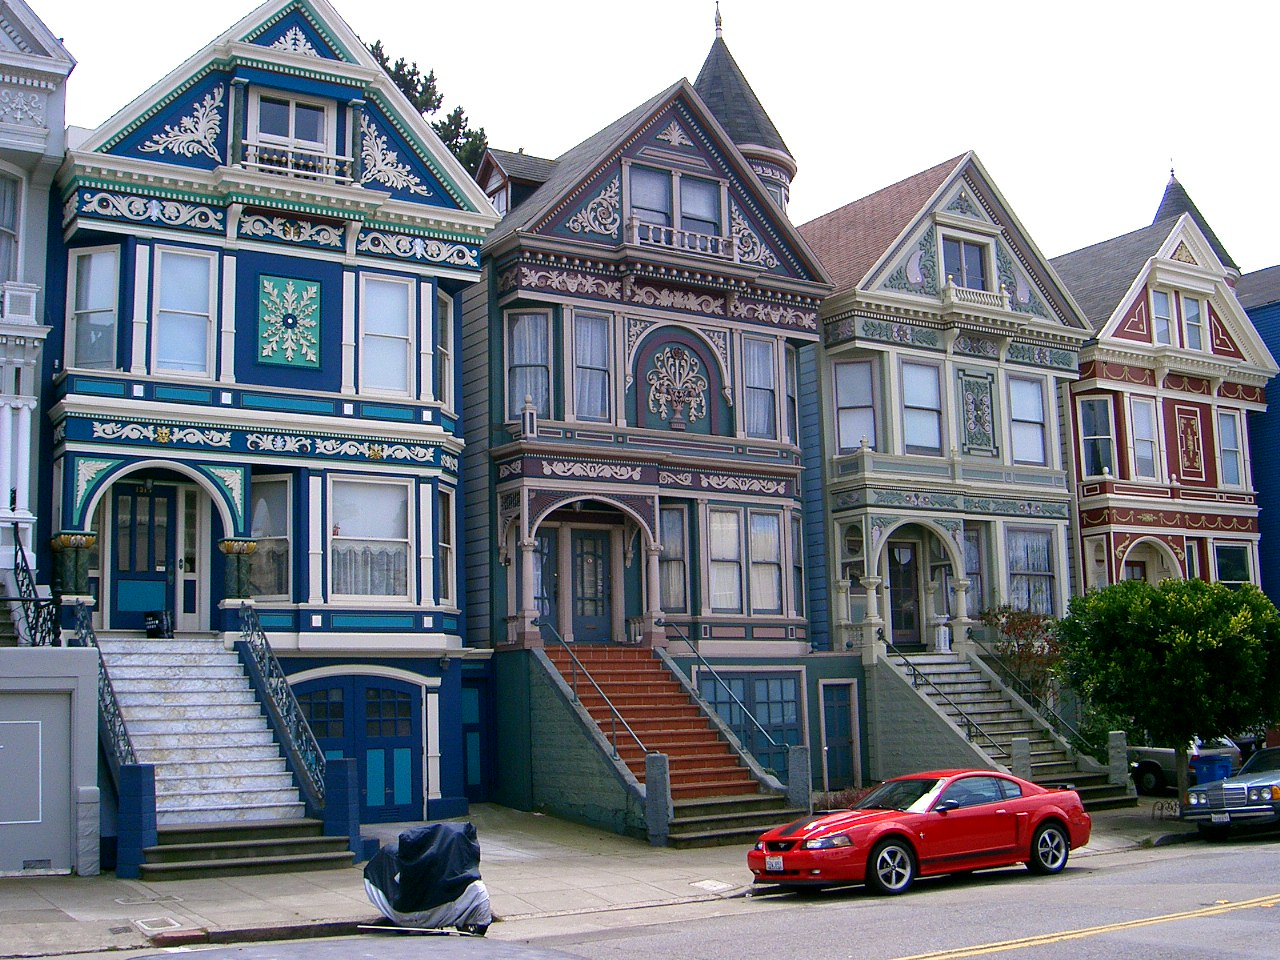 File:Haight Ashbury11.JPG - Wikimedia Commons